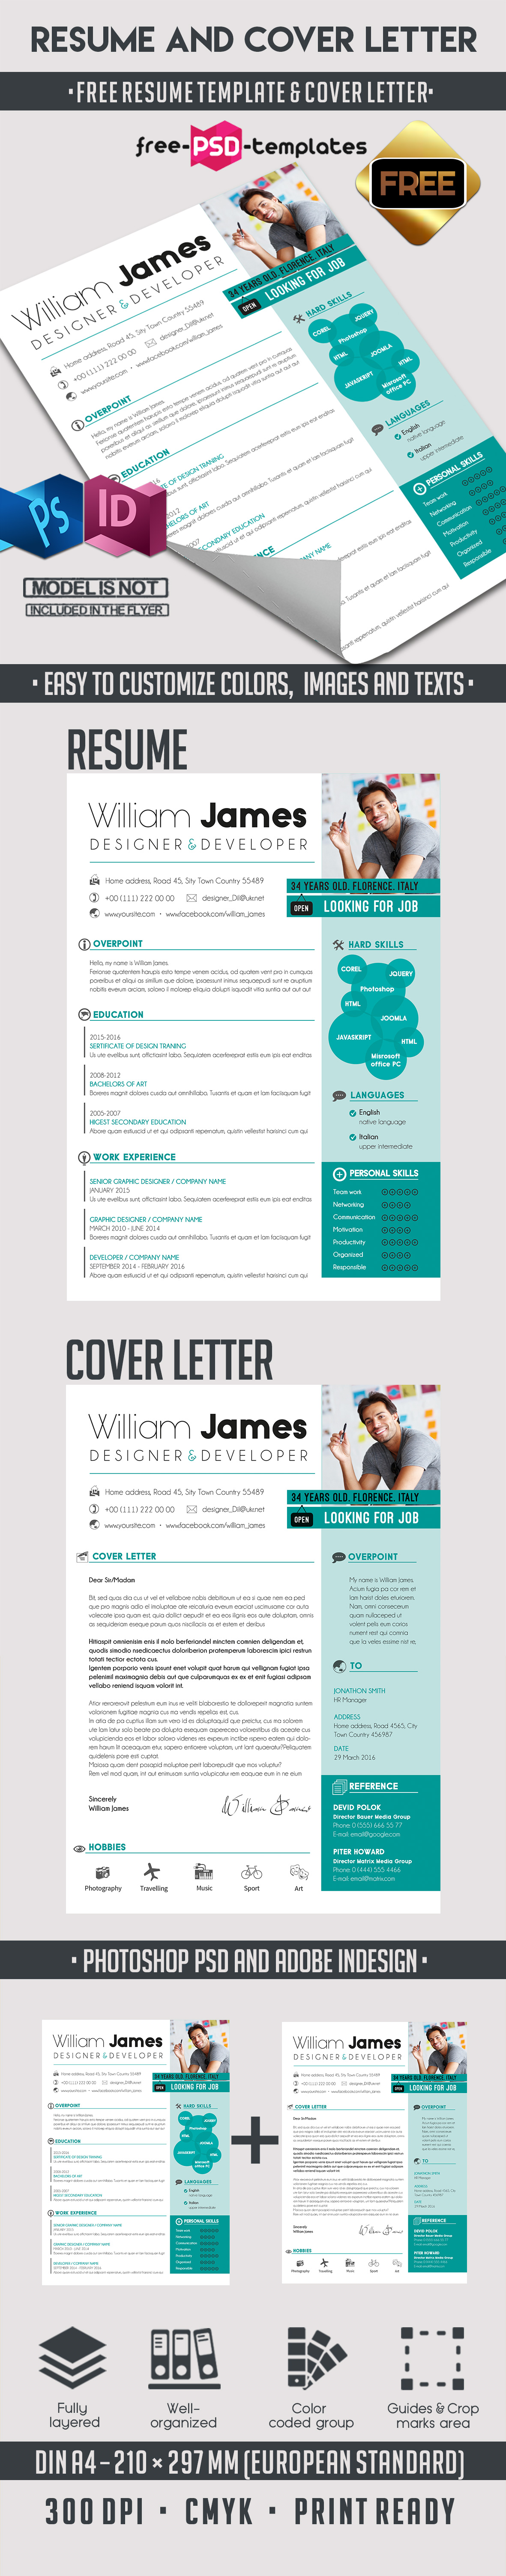 bigpreview_free resume template cover letter - Free Cover Letter For Resume Template